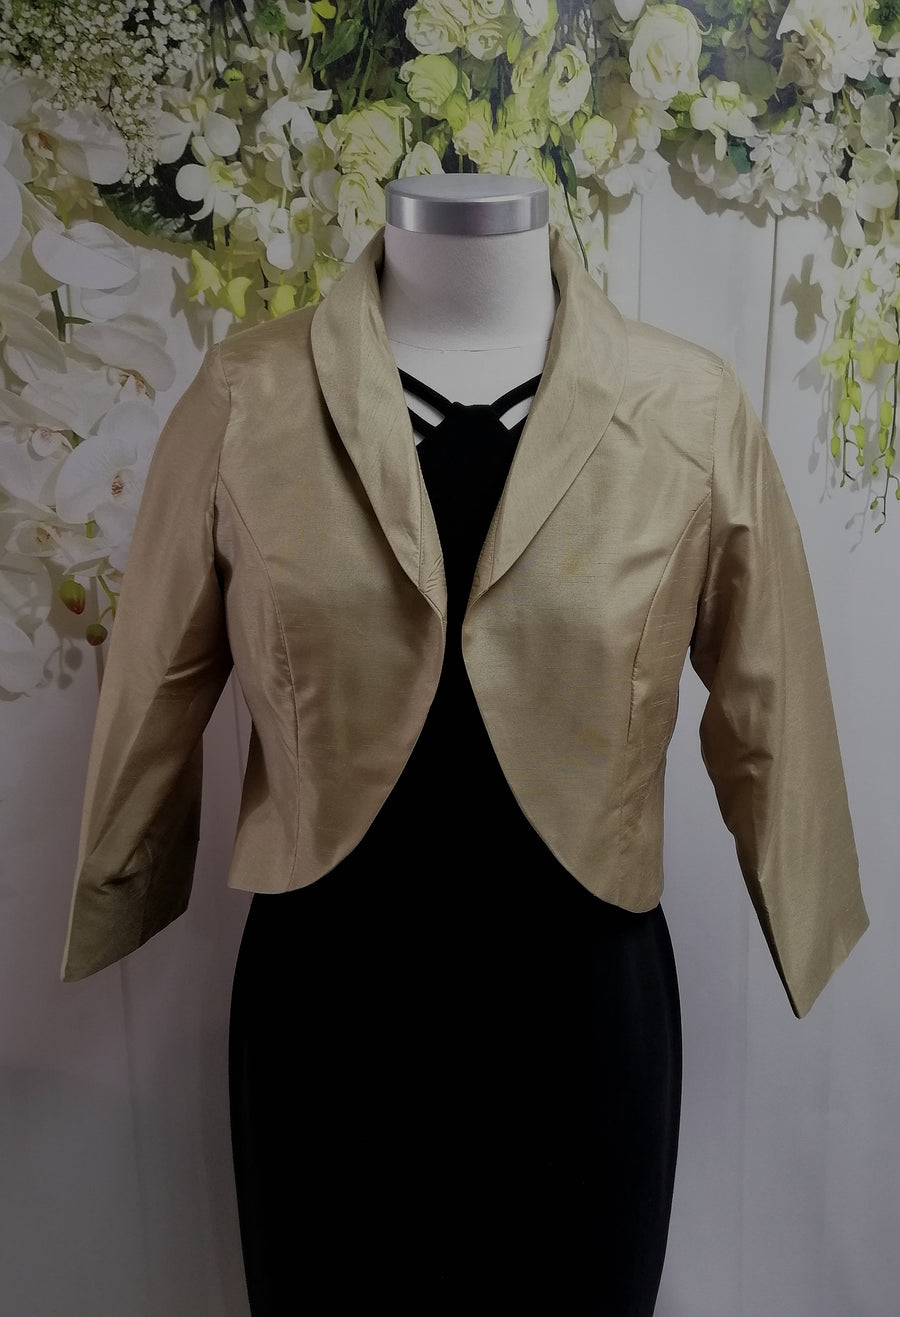 LS Collection Crop Jacket Green/Gold (SB634 PJI)